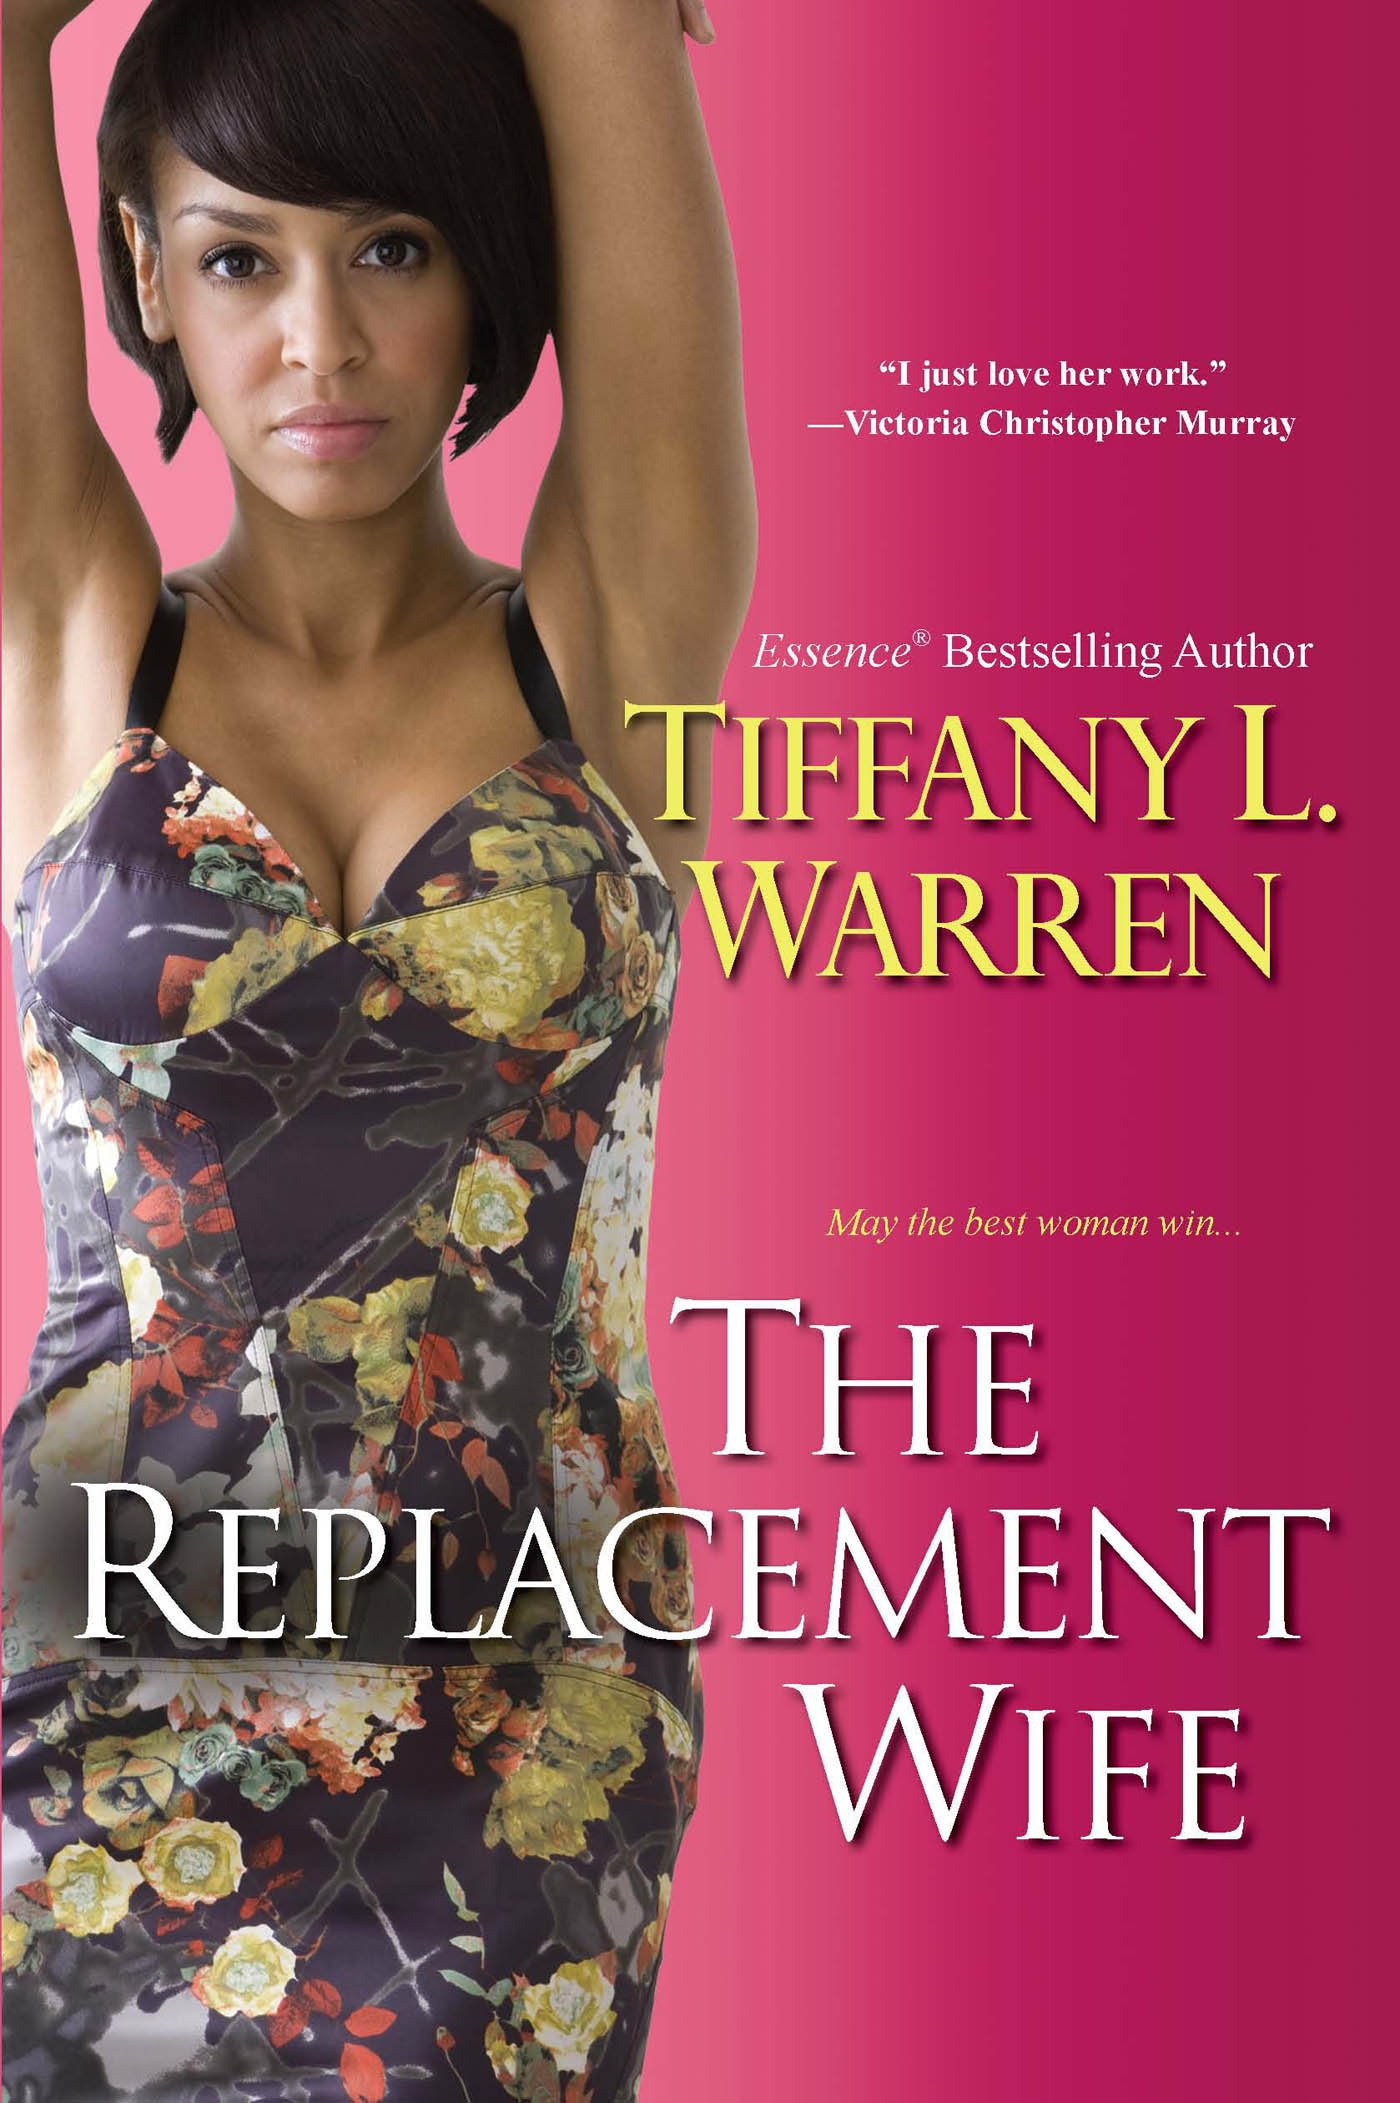 The Replacement Wife by Tiffany Warren